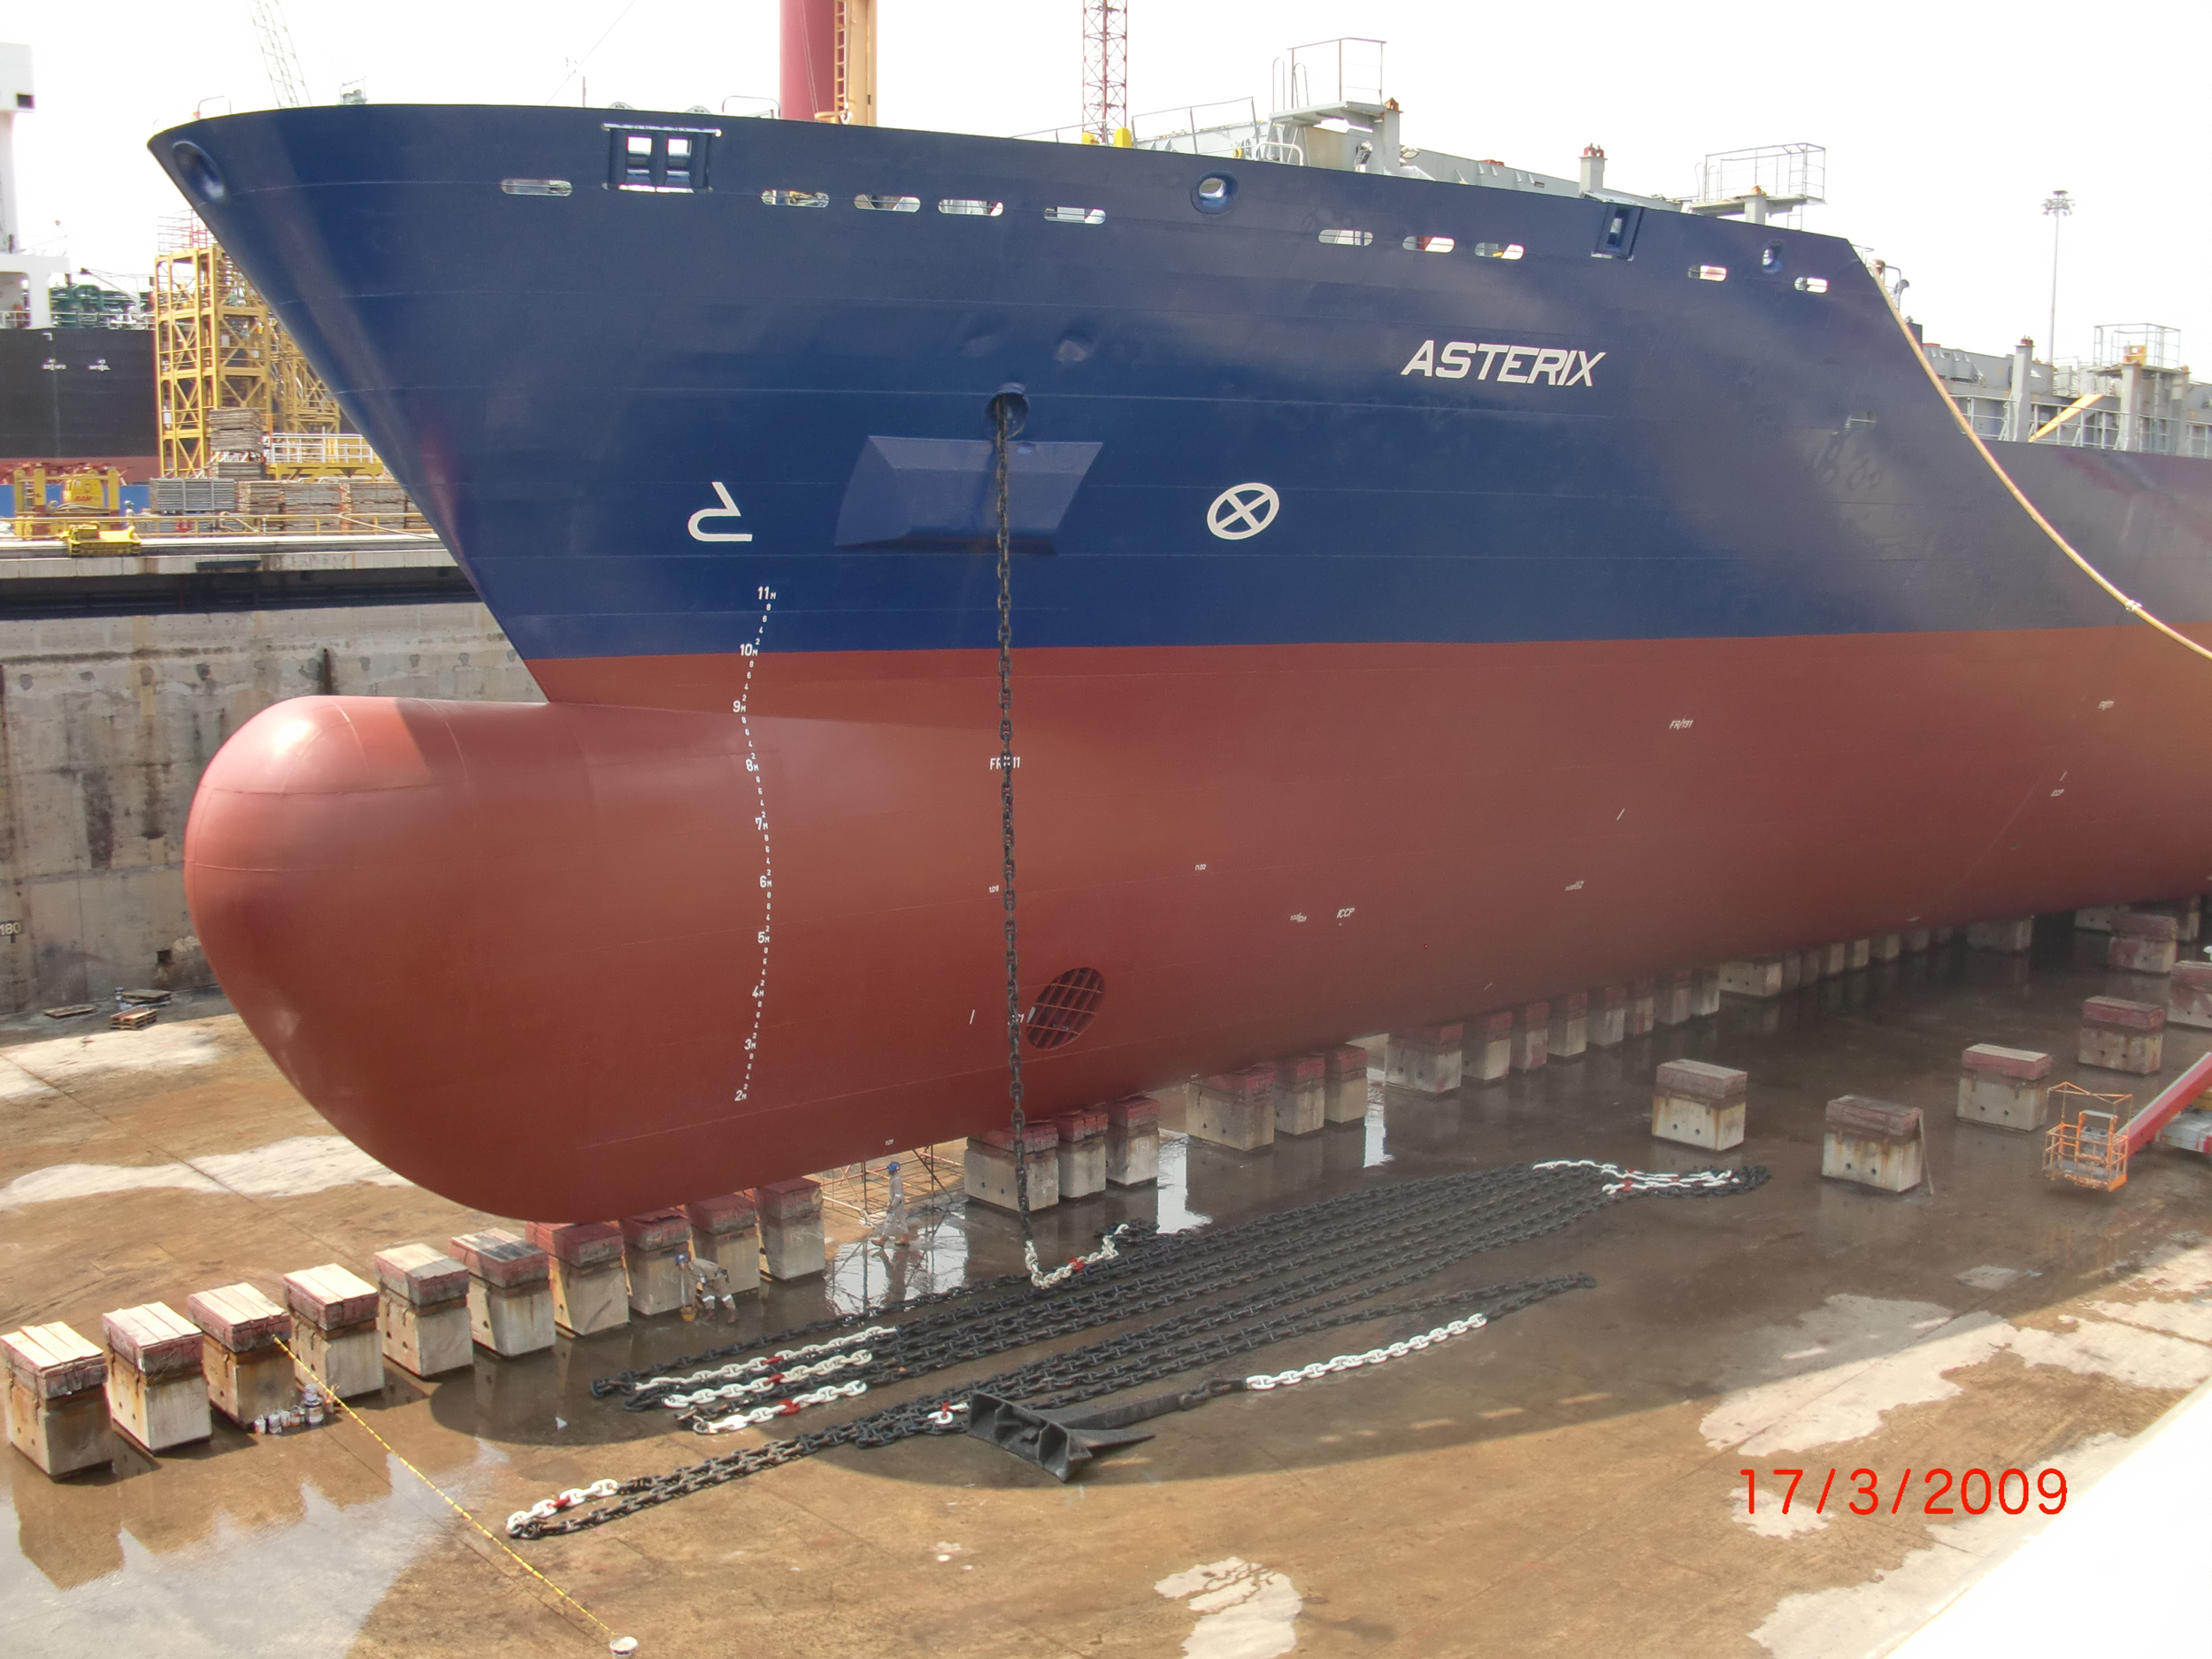 The Asterix, a commercial container ship seen here in dry docks, will become the new interim supply-ship for the Royal Canadian Navy after conversions are made by Davie Shipyards of Lévis, Quebec. (Davie)